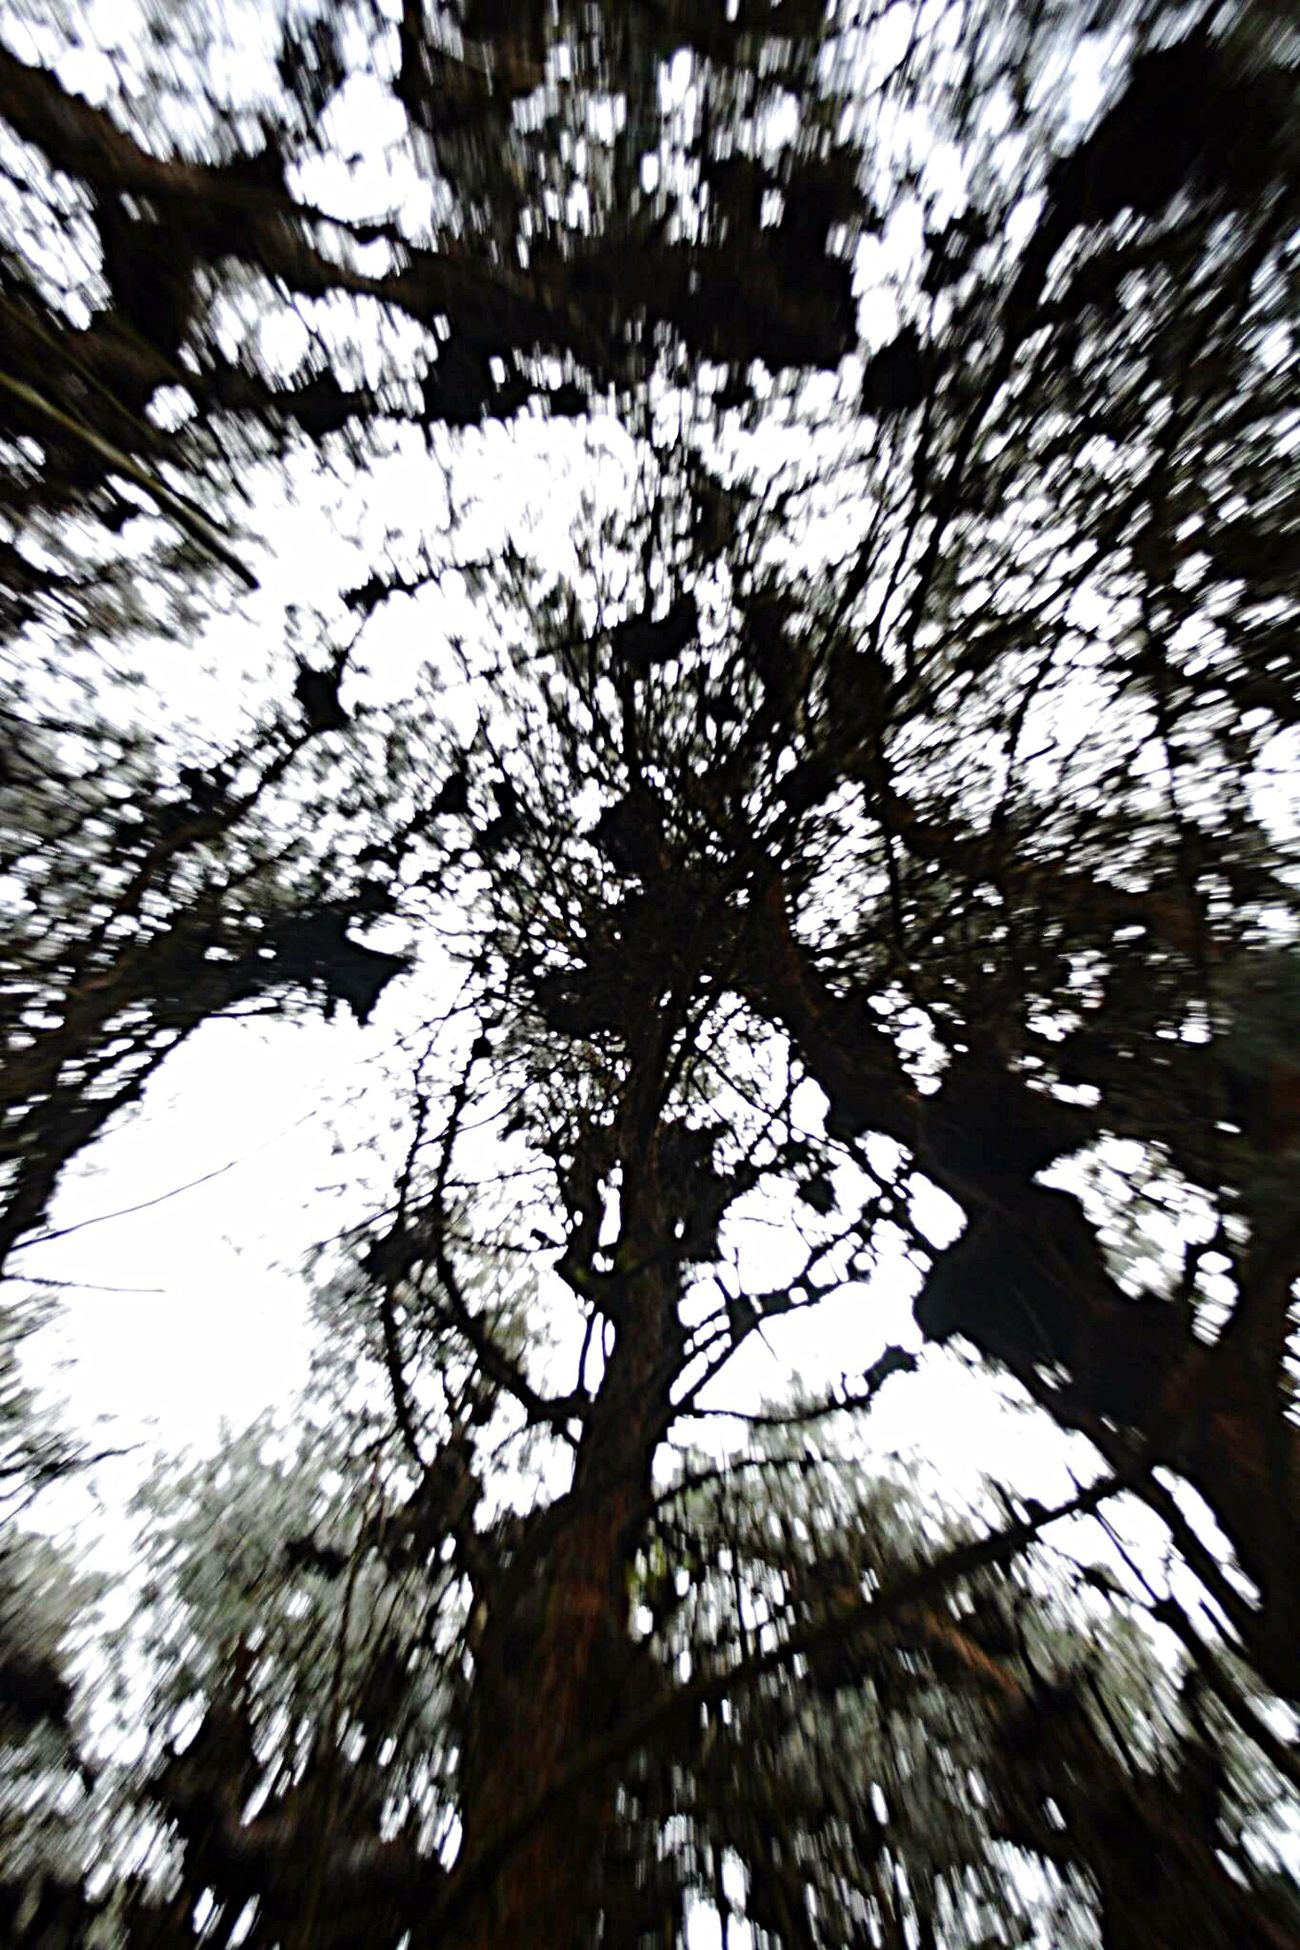 Distorsiones/Distortions LifeGreen Nature Colombia La Forêt